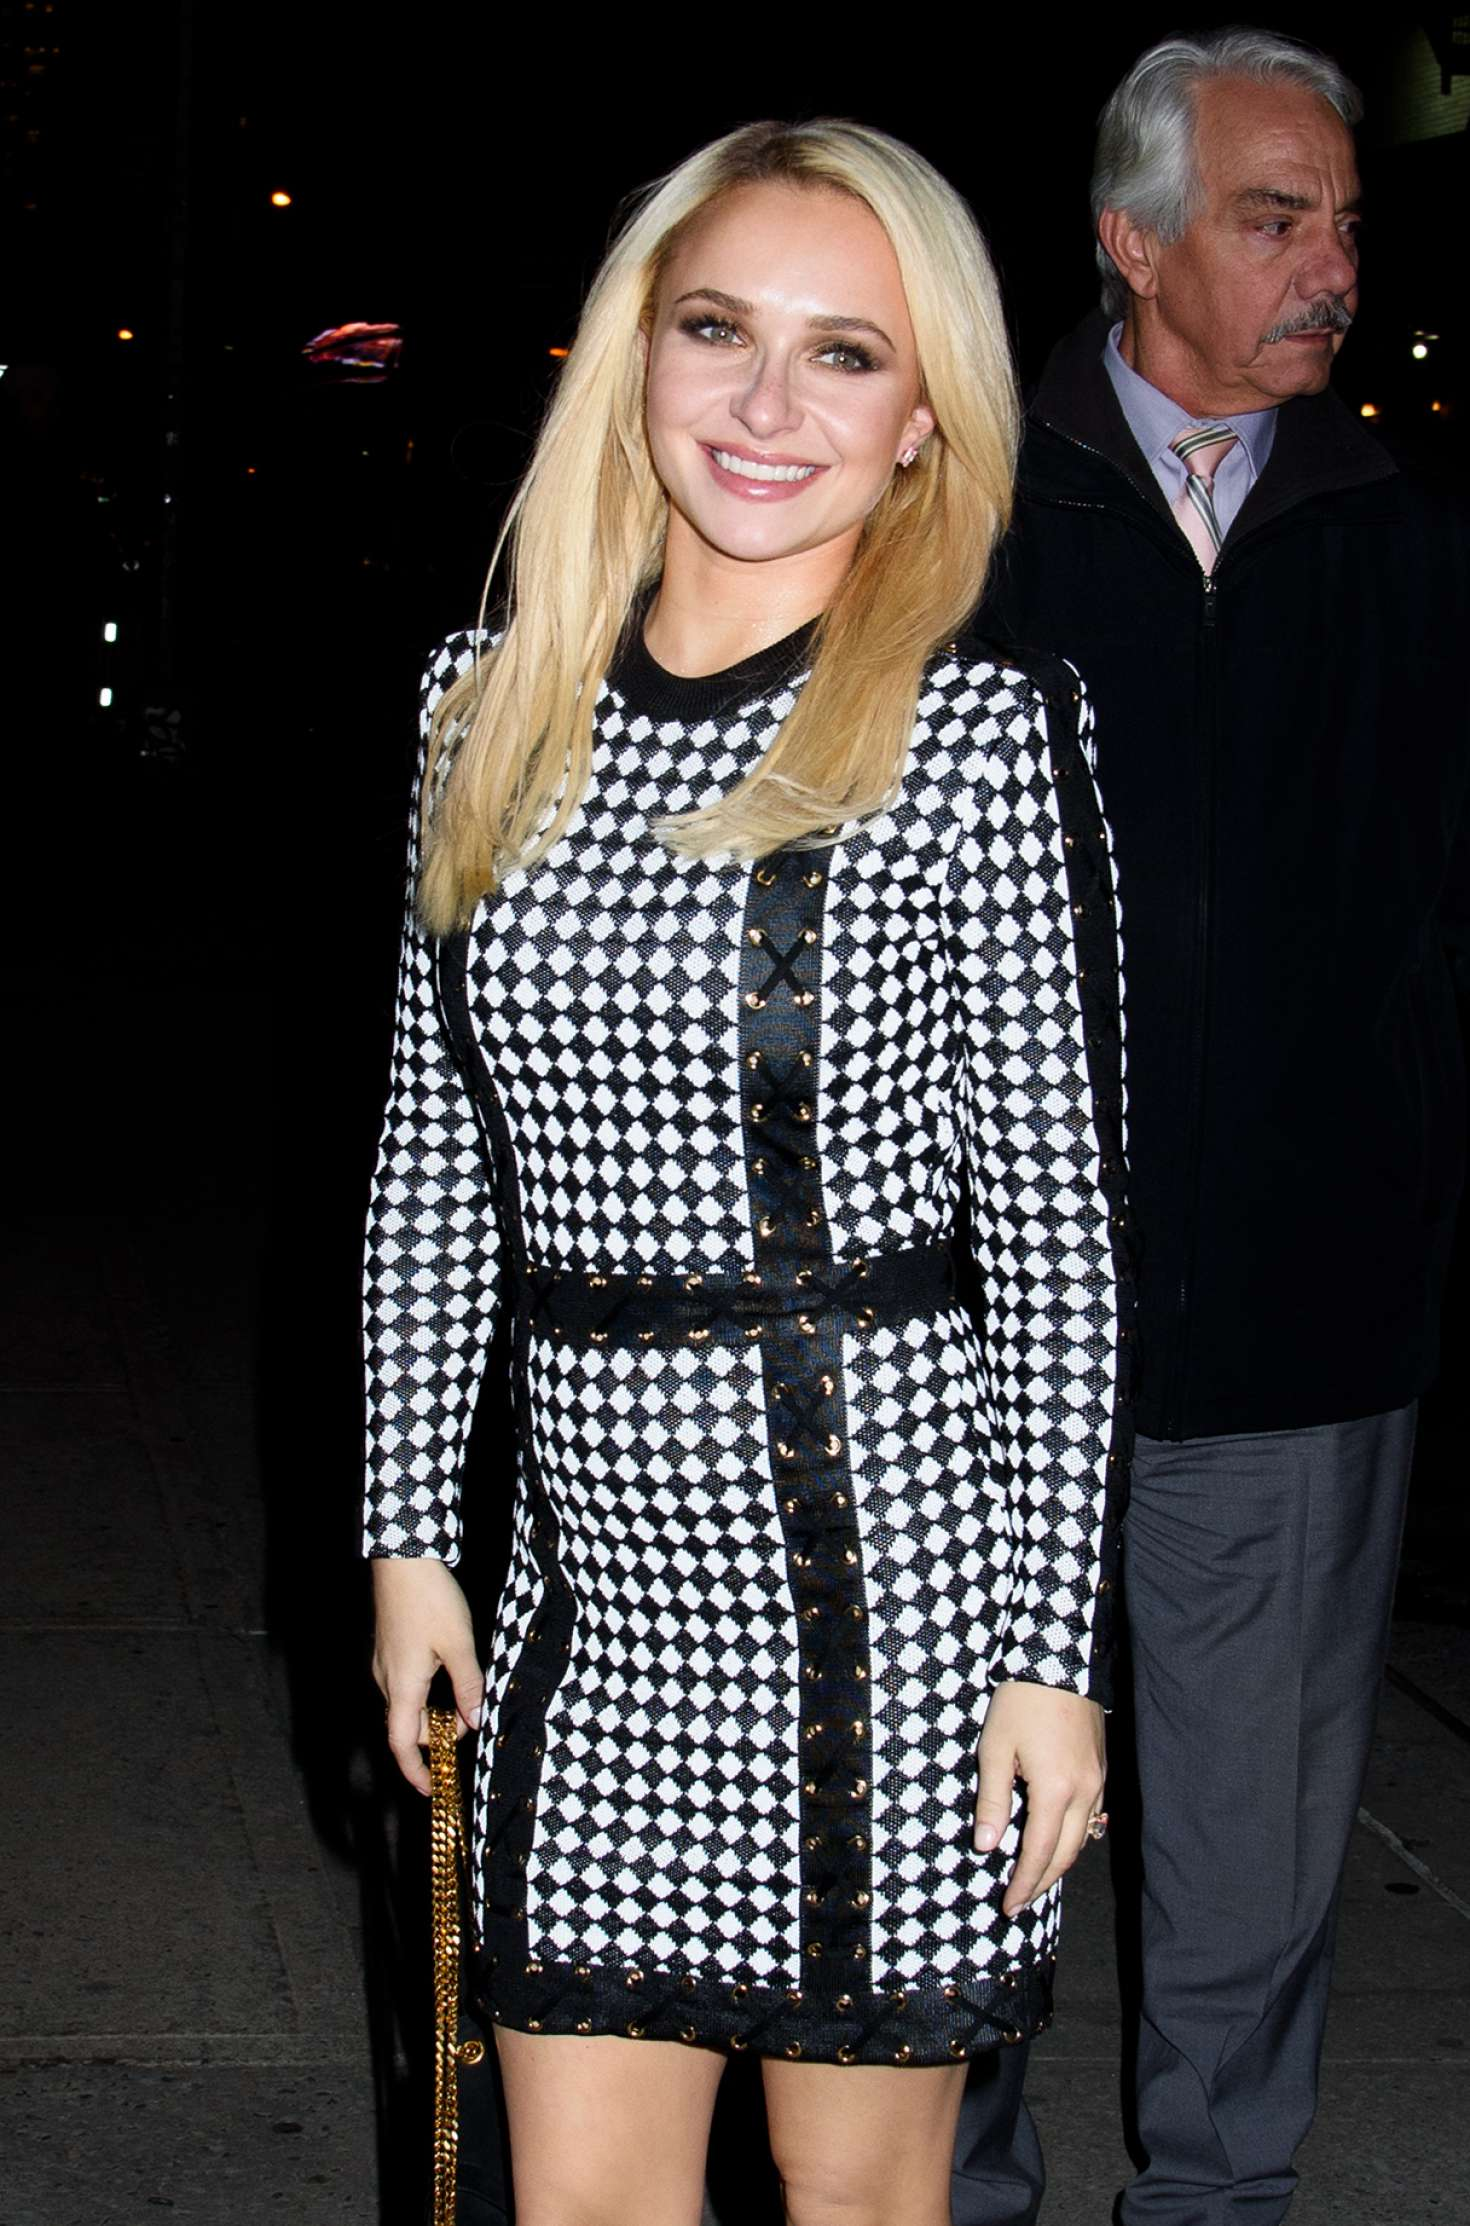 Hayden Panettiere - Arriving to Late Show With Stephen Colbert in New York